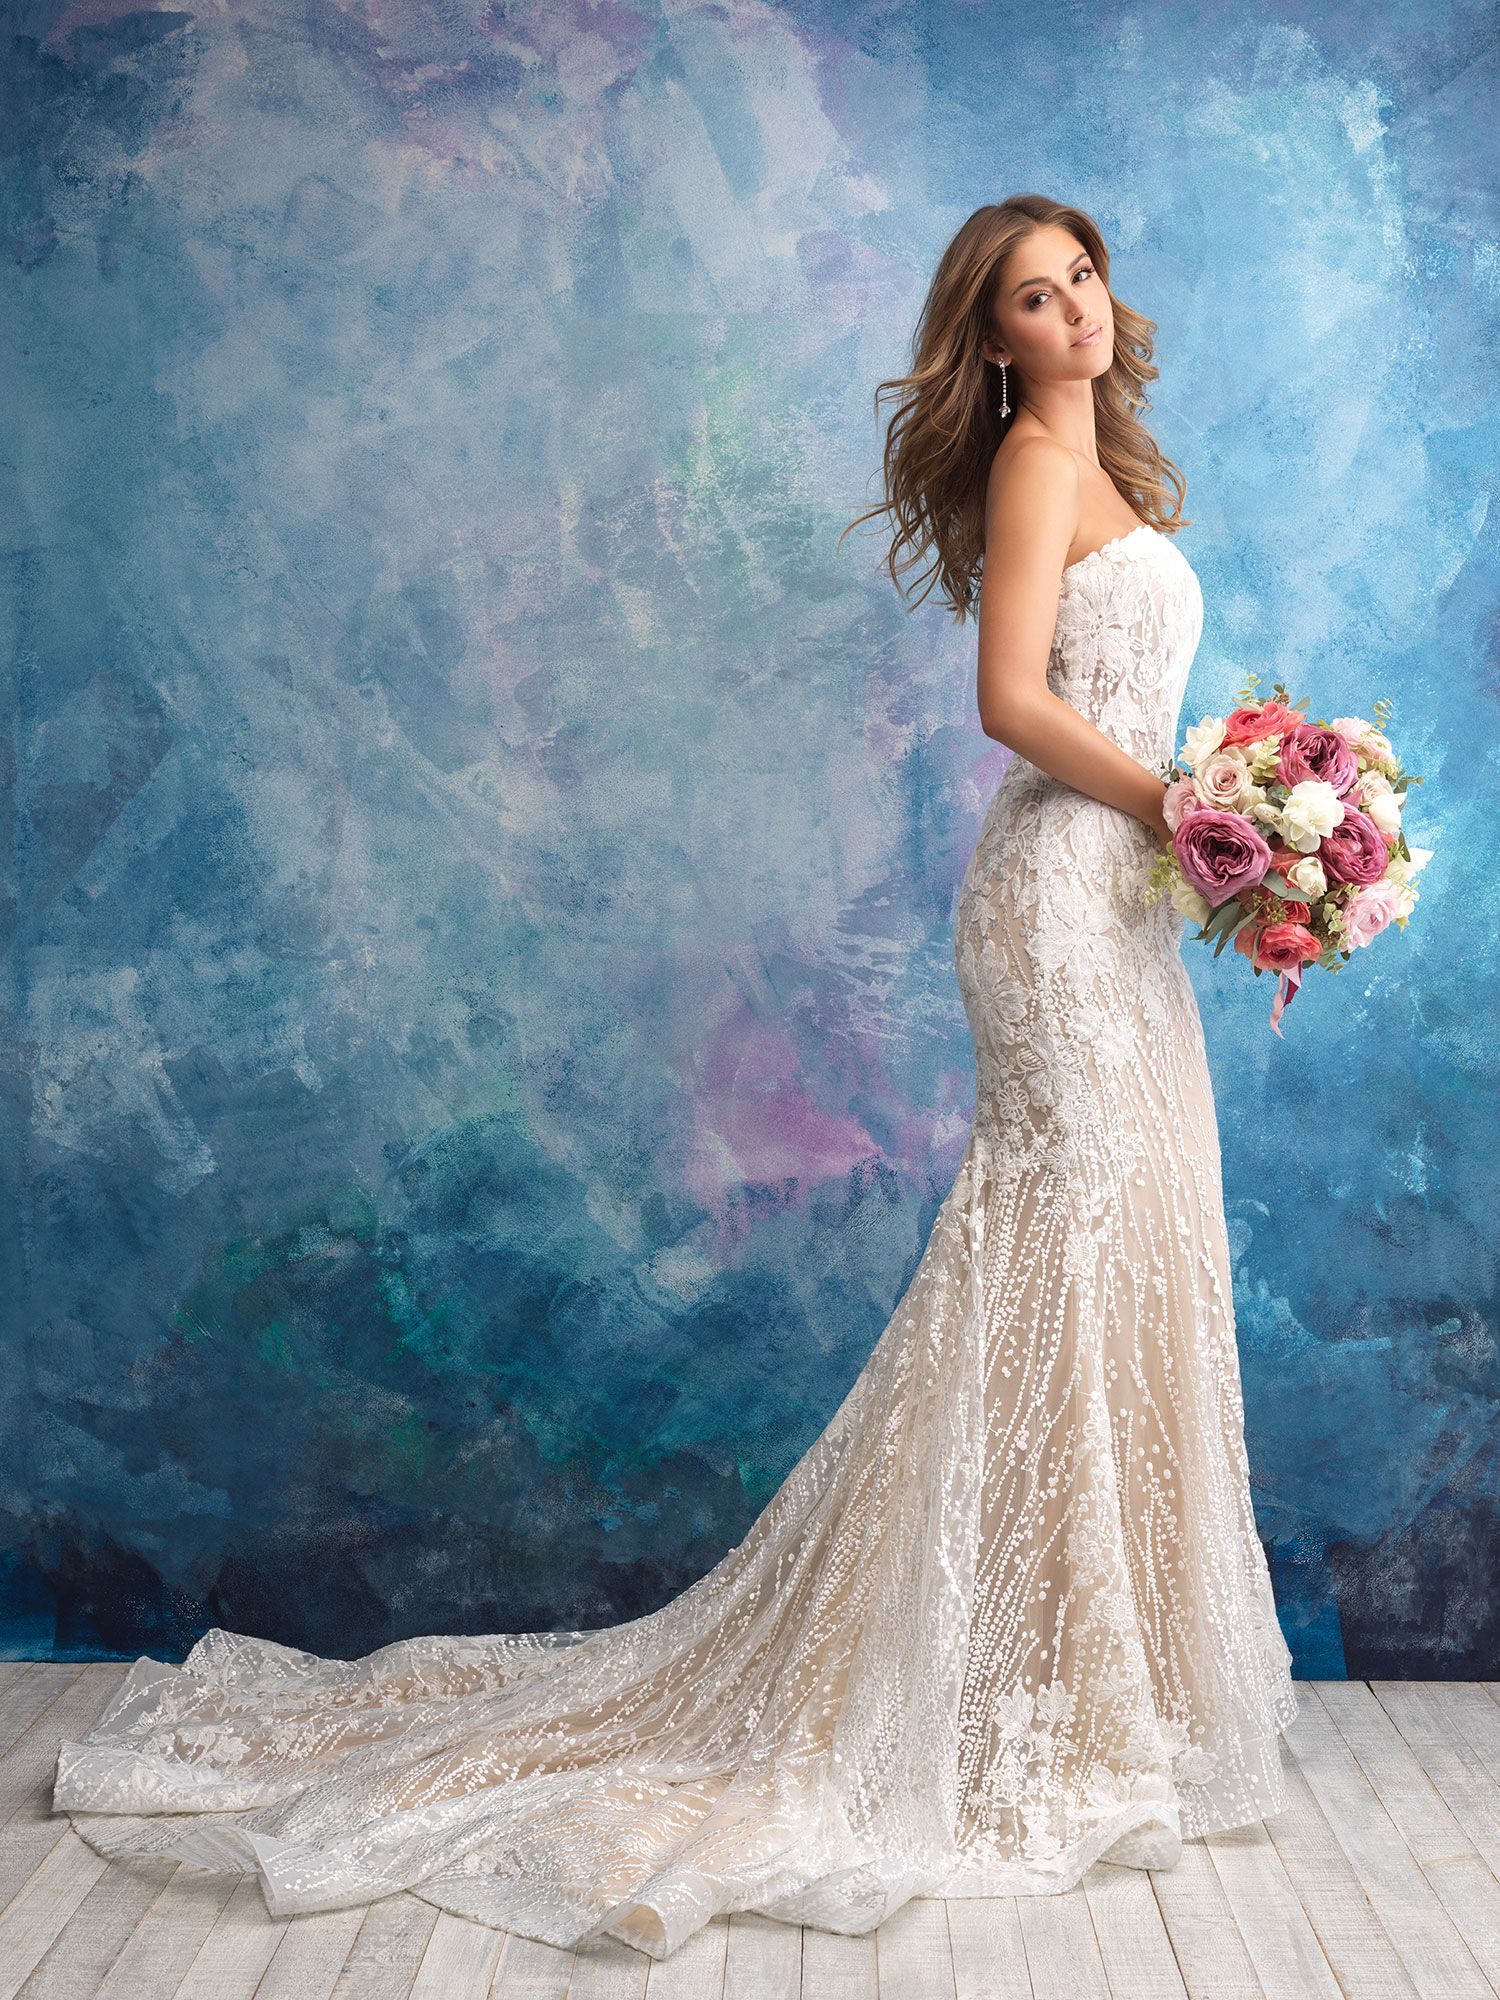 8bc2f8fe963f1 Allure Bridals Wedding Dress Collection Fall 2018 will leave you speechless  with their stunning gowns, spectacular details, and downright  sophistication.